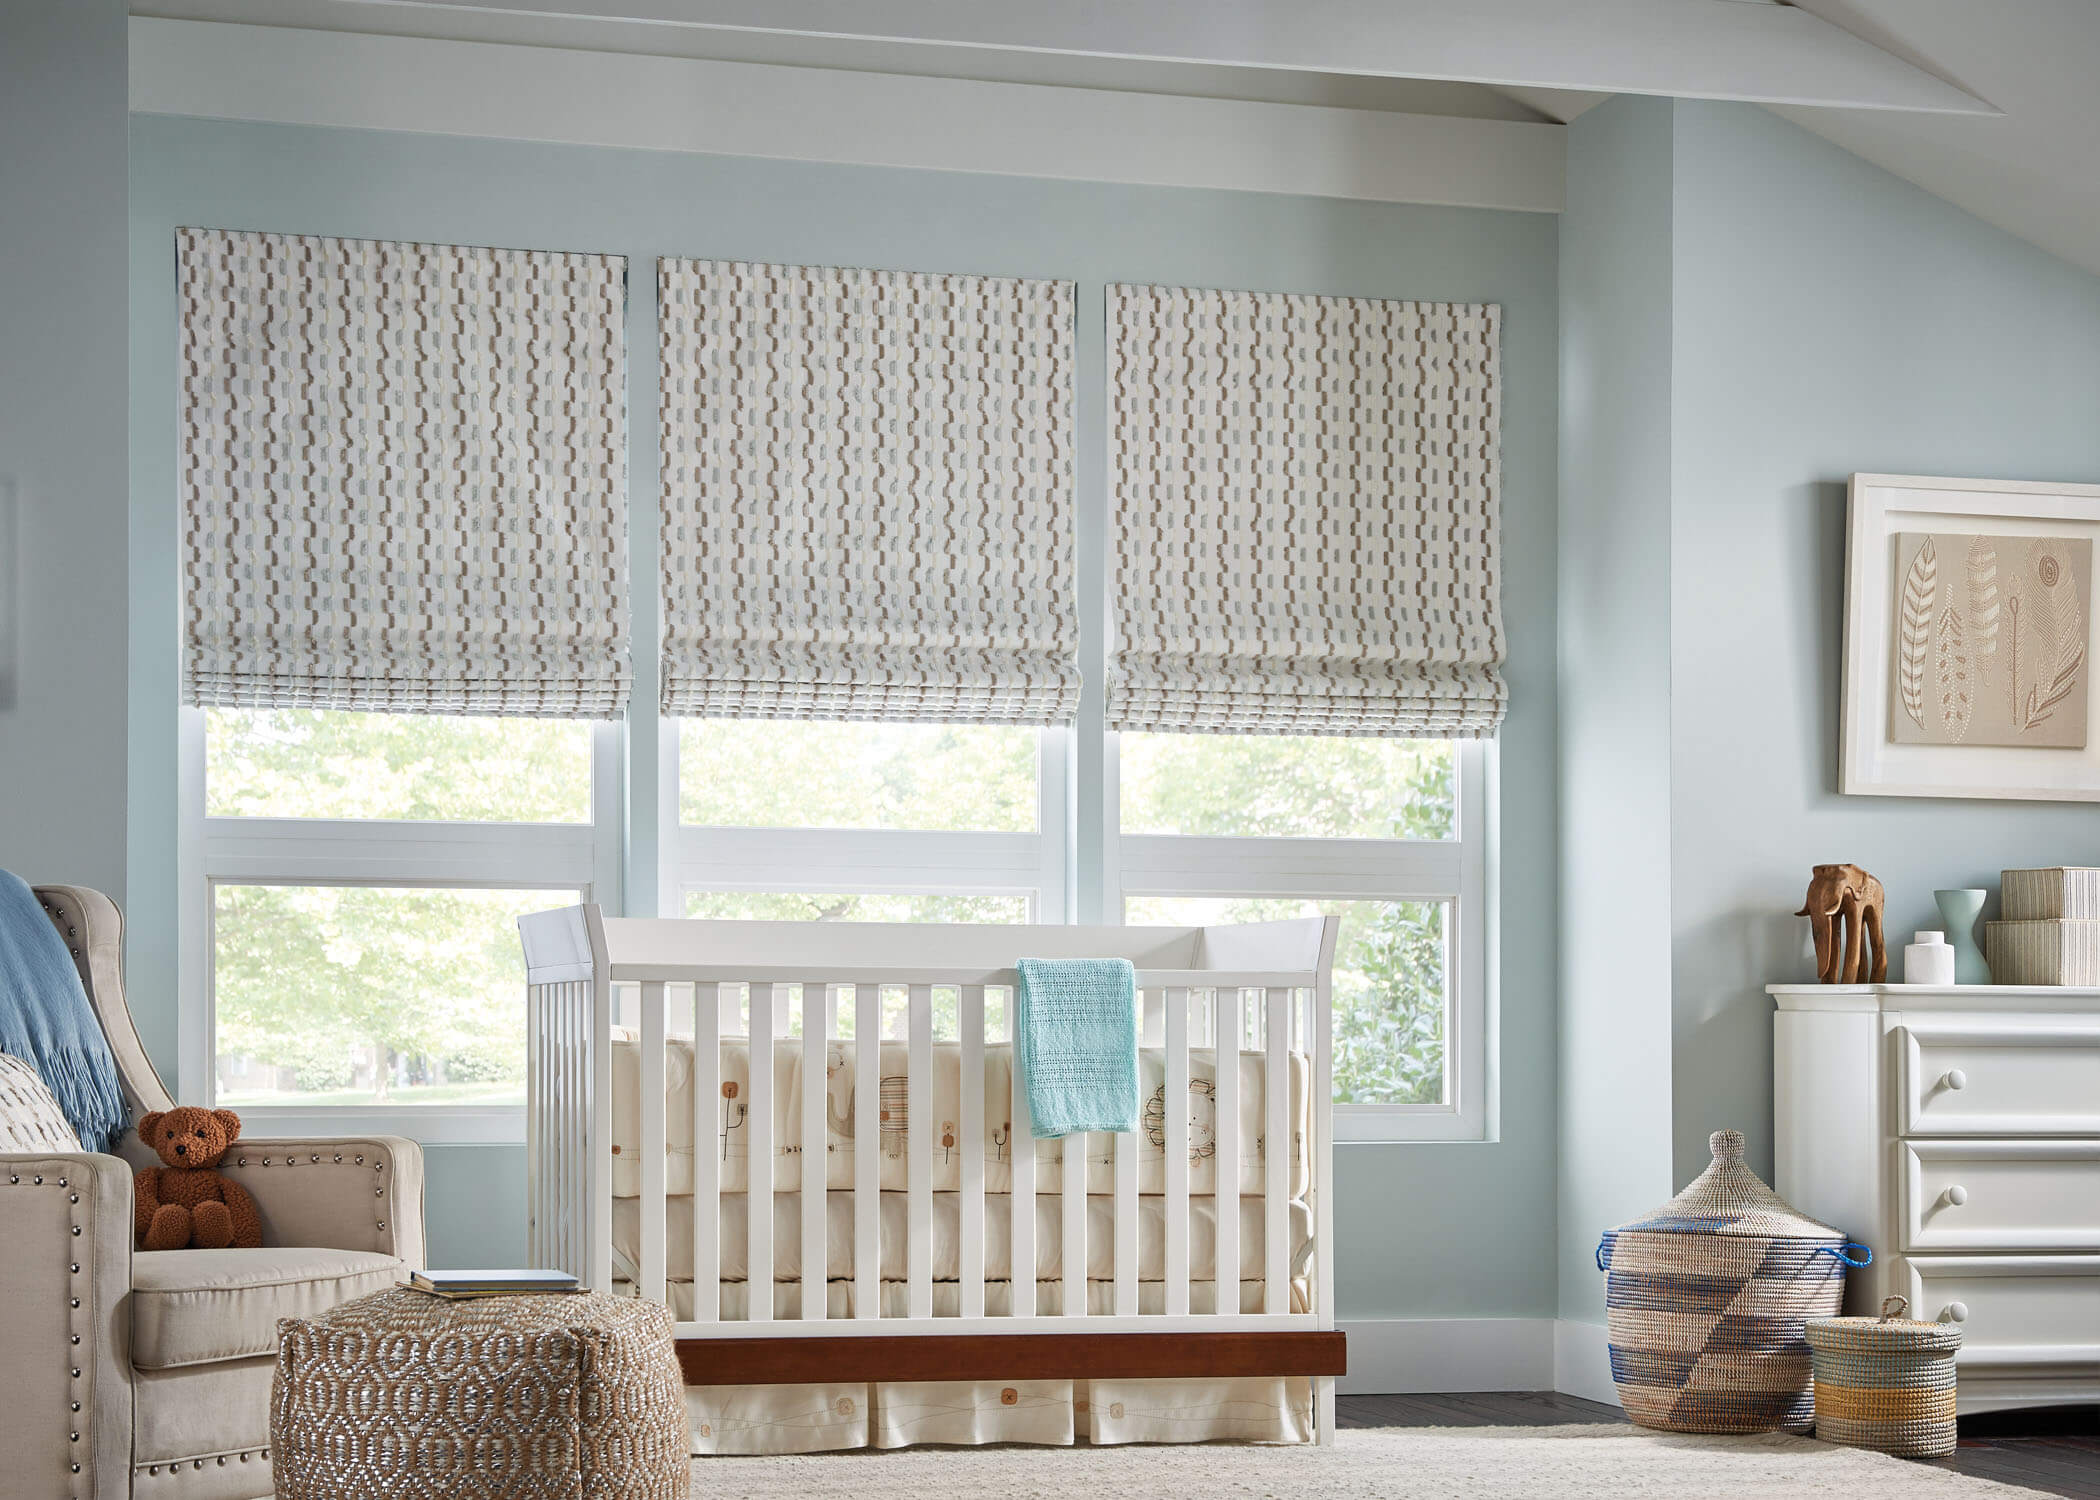 Graber_FabricShades_Bedroom